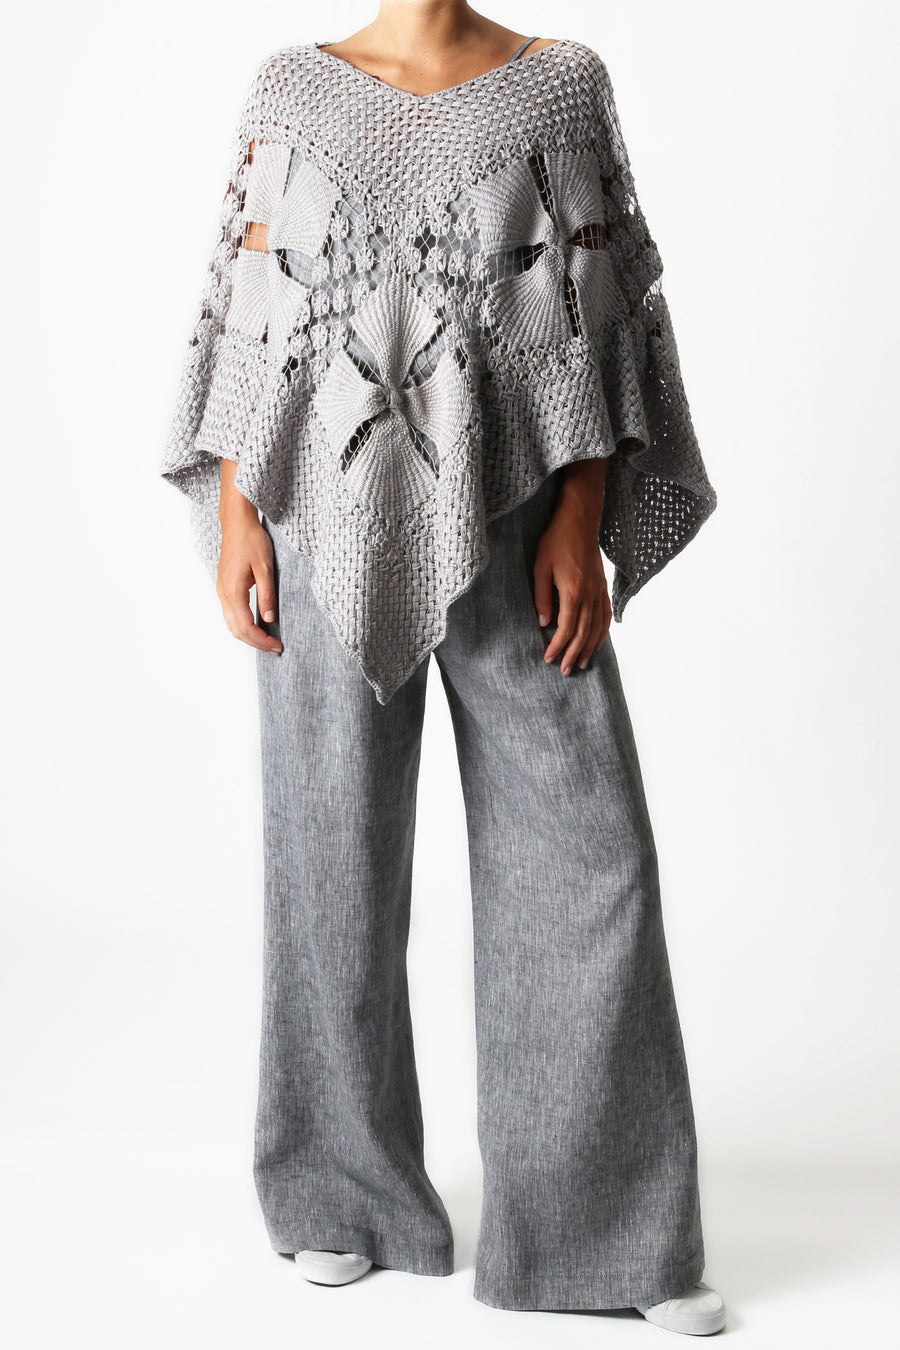 This is a photo of a woman wearing an all grey outfit with grey linen pants and a handmade grey knit shawl in the shape of a poncho.